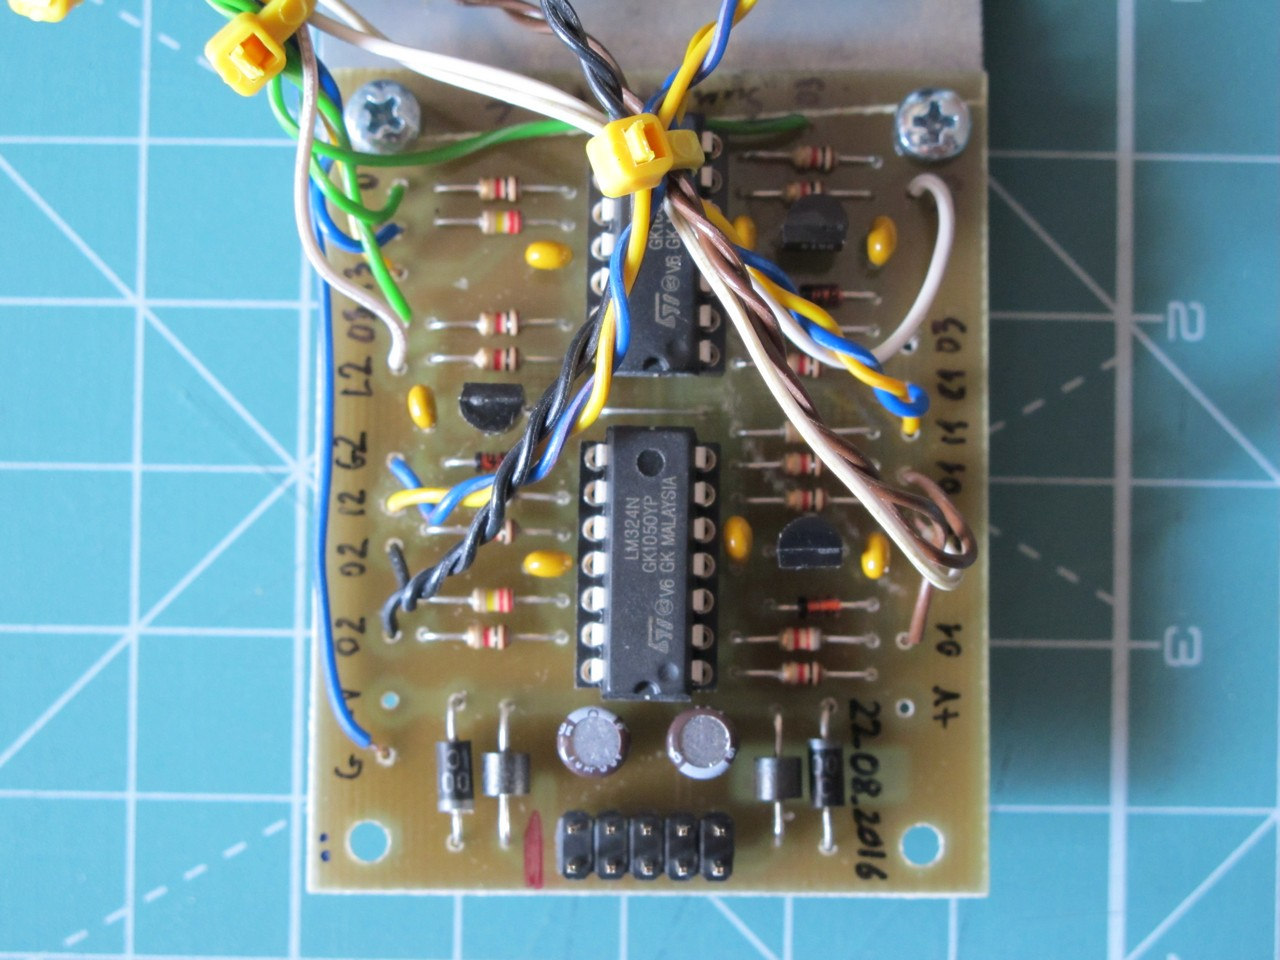 Active (buffered) multiple PCB with all parts soldered